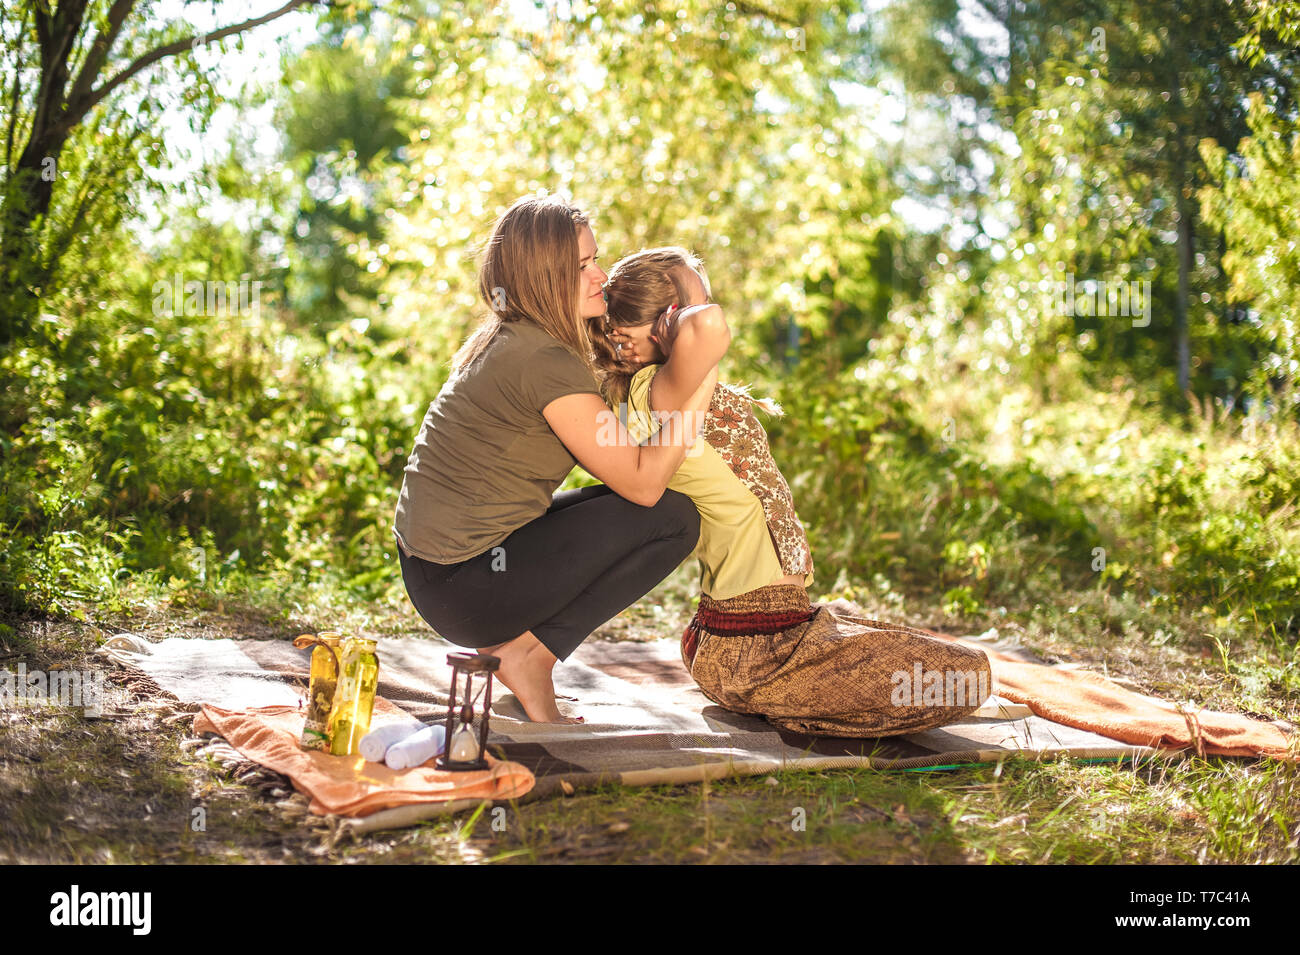 Girl masseuse provides a thorough massage  in the daylight. - Stock Image